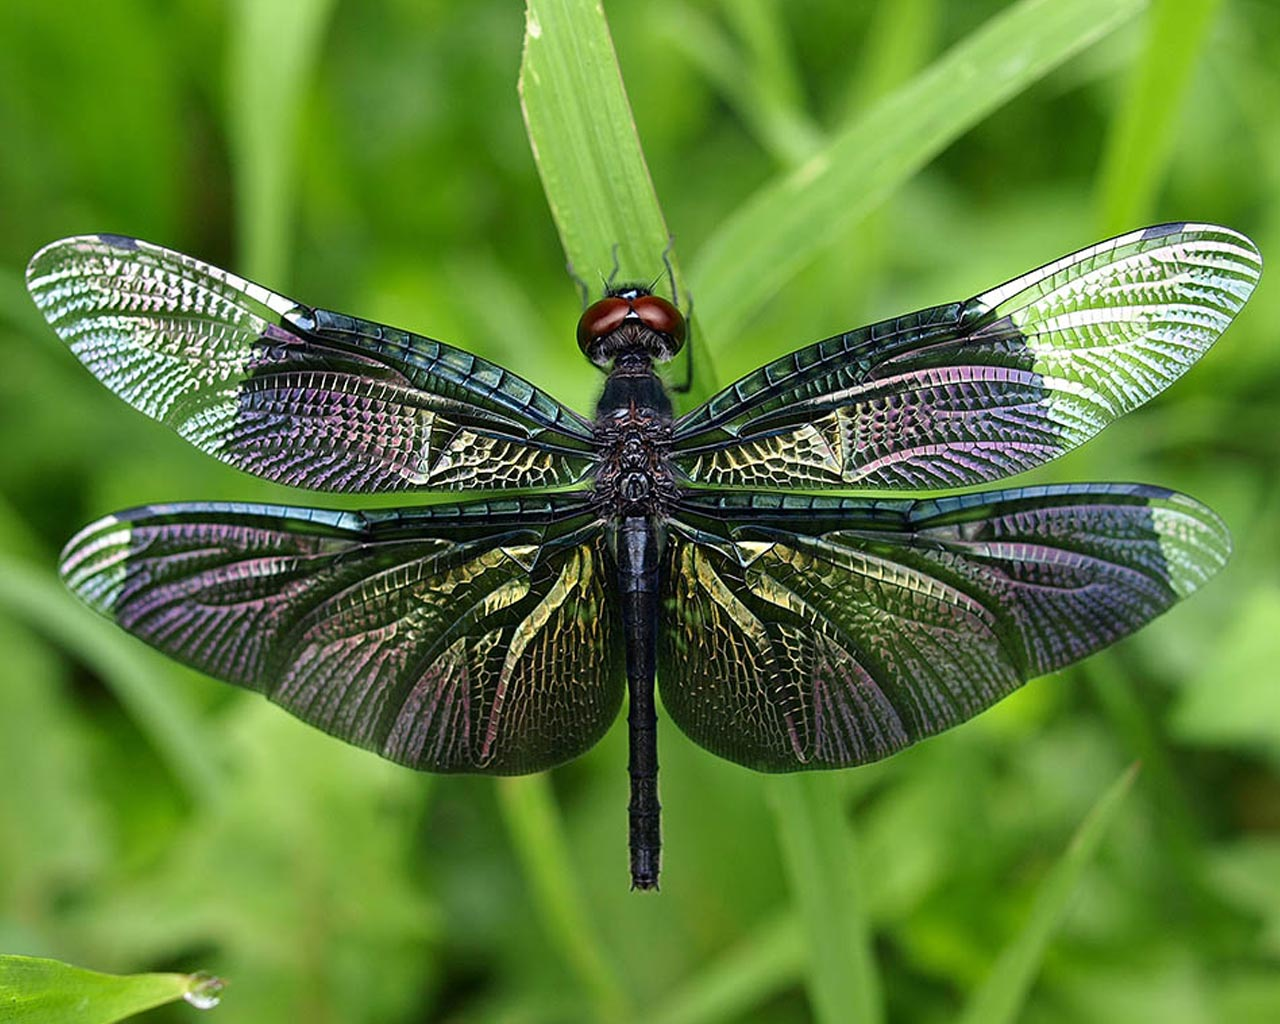 Amazing Dragonfly Insect